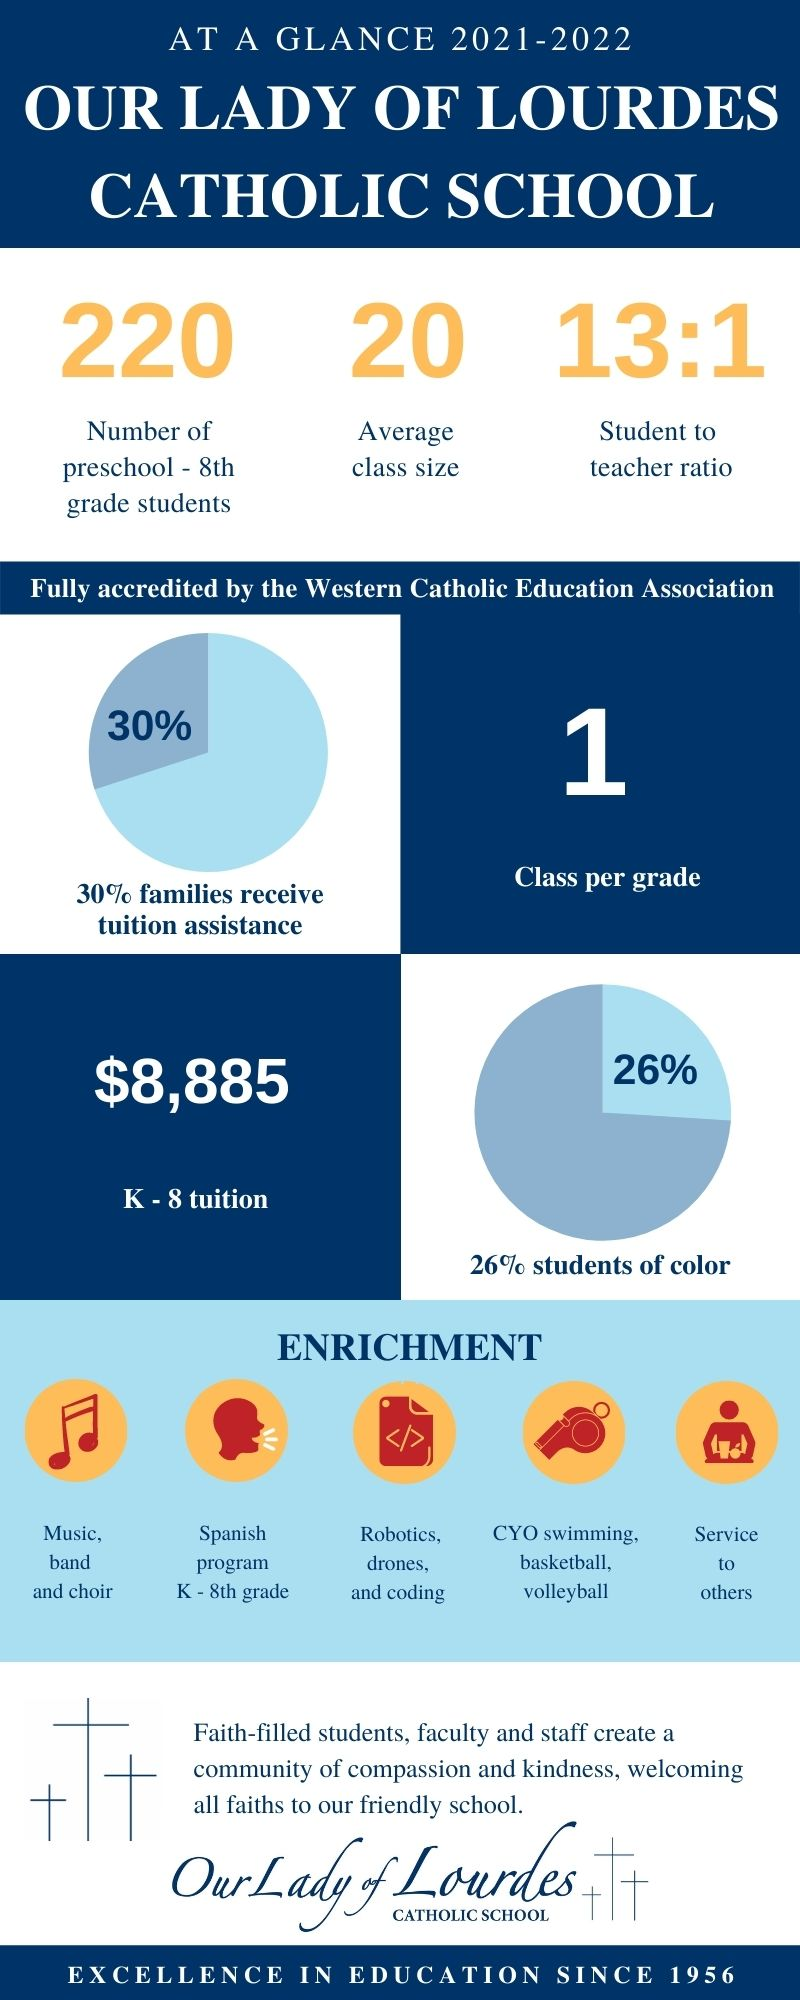 About us infographic for Our Lady of Lourdes Catholic School, Vancouver WA 2021-2022